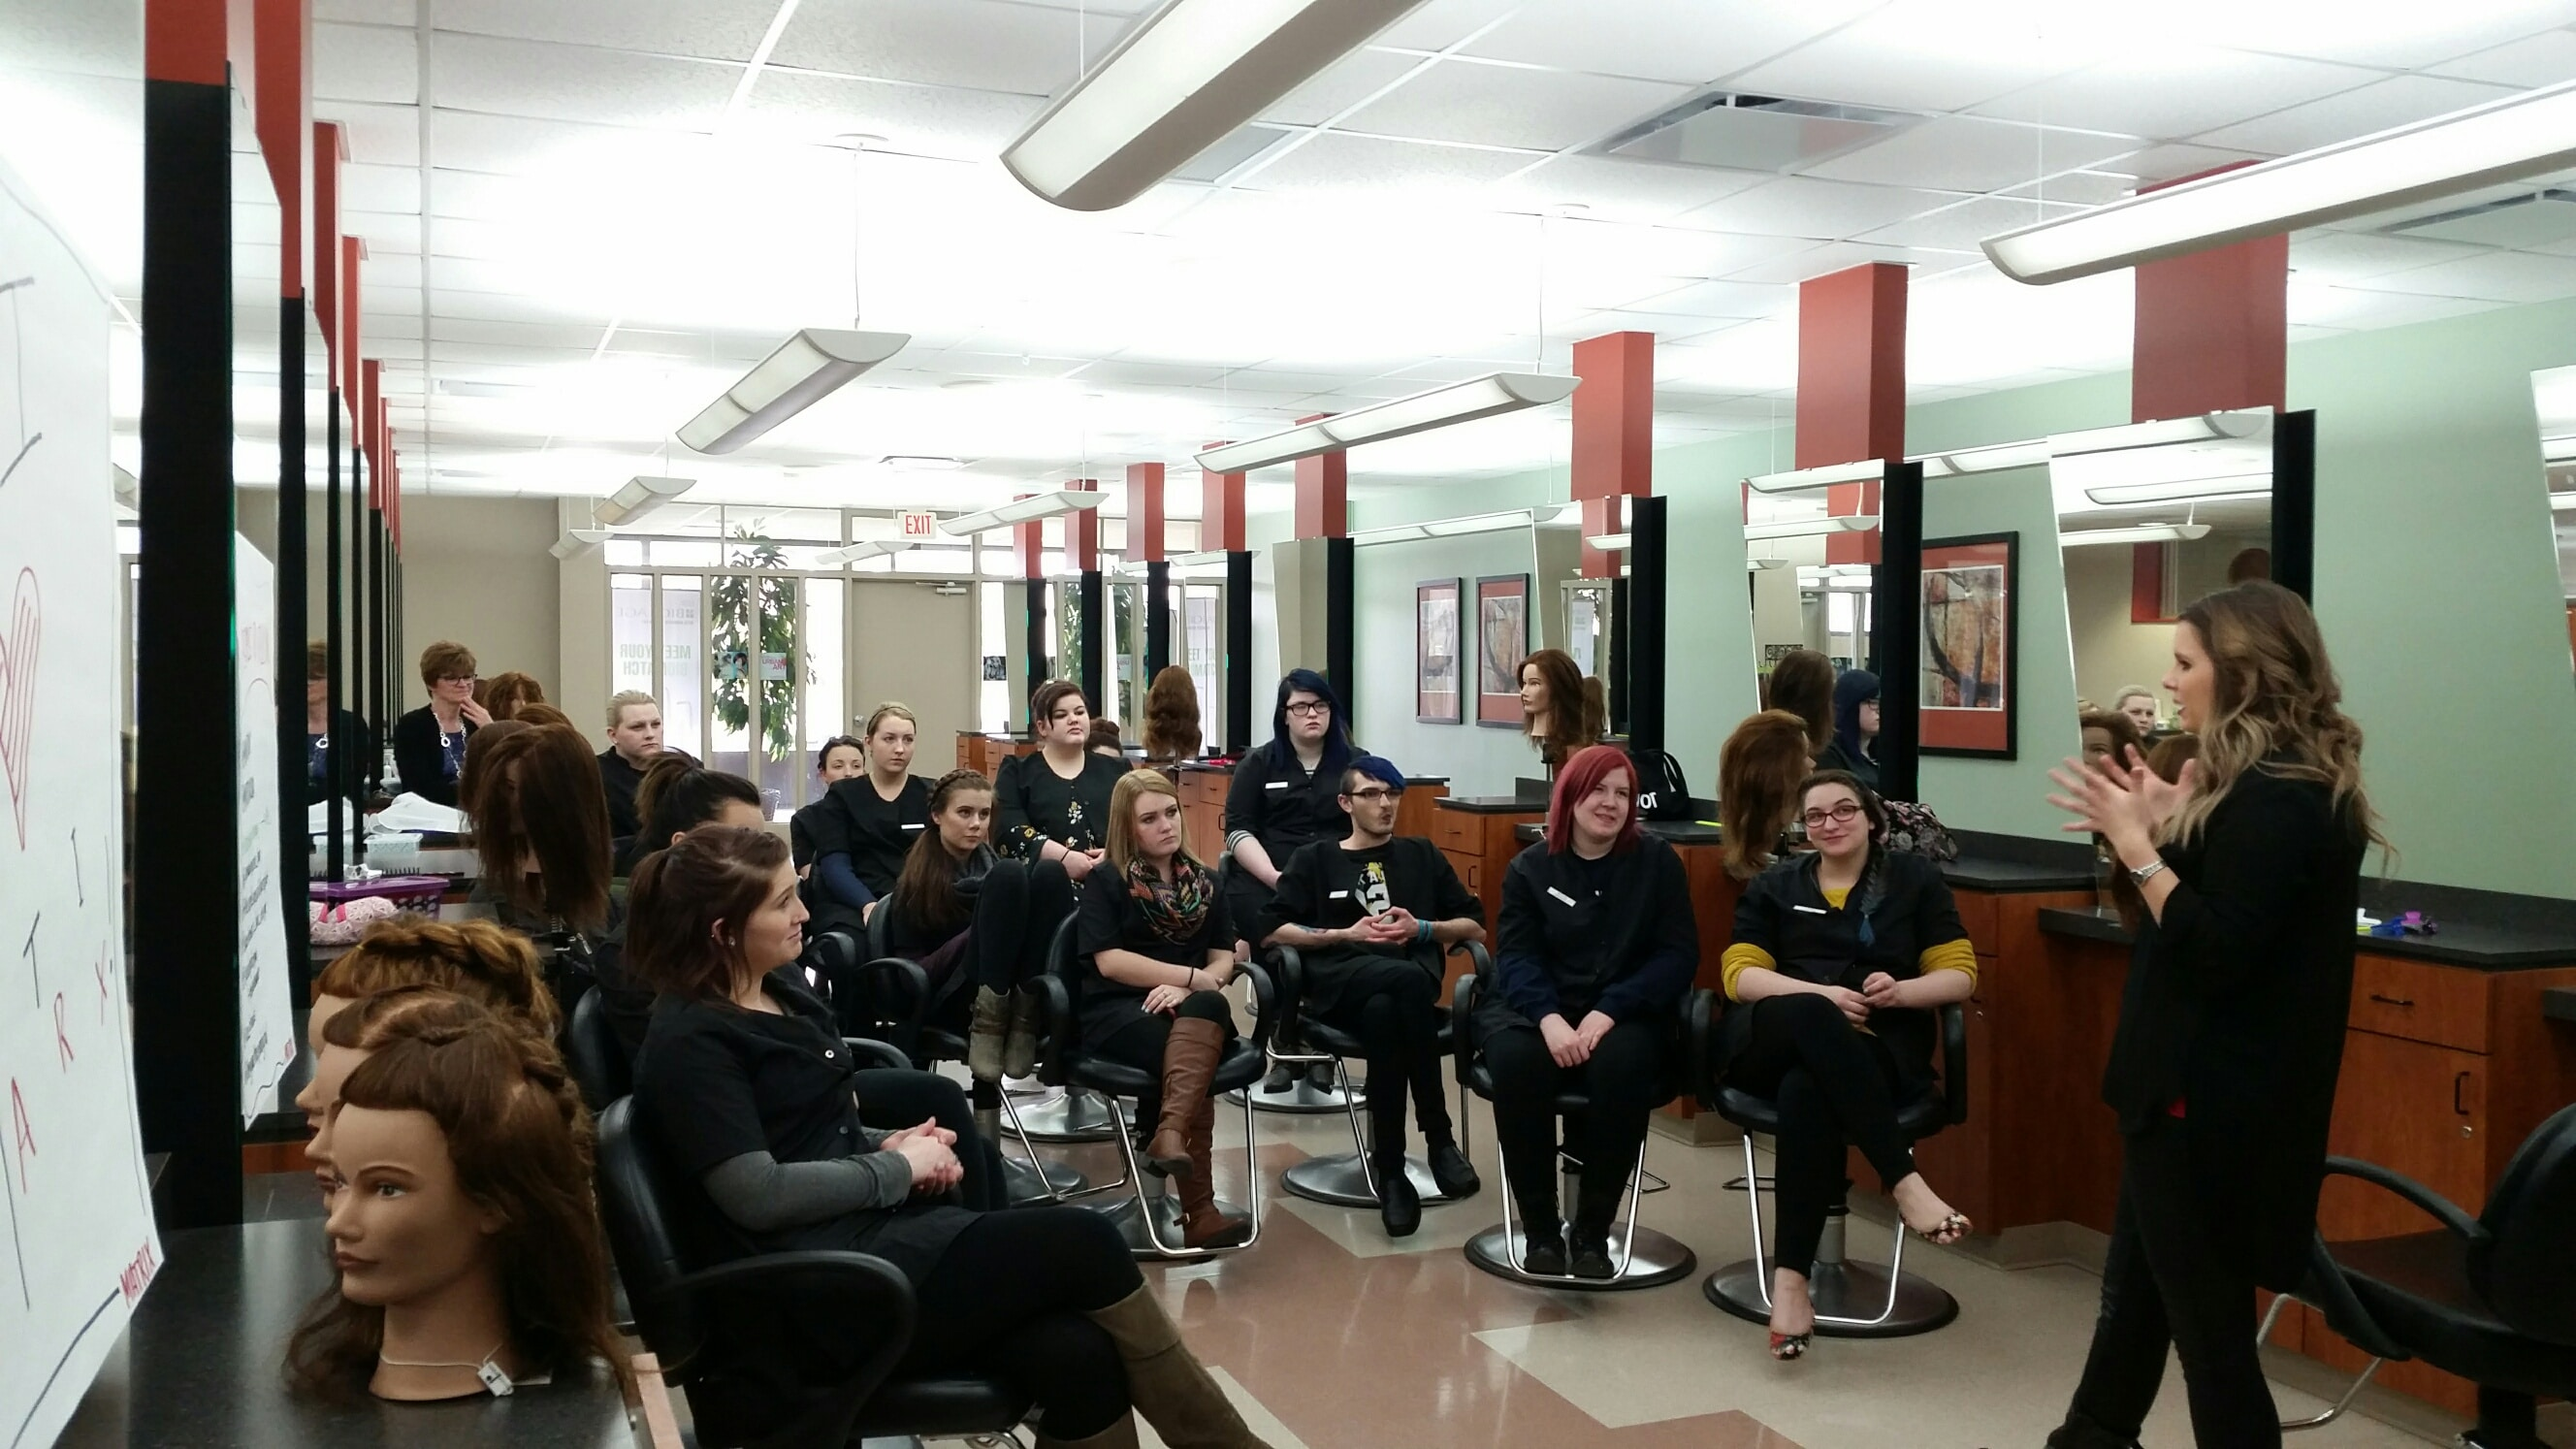 cosmetology students sit in chairs in salon while listening to speaker